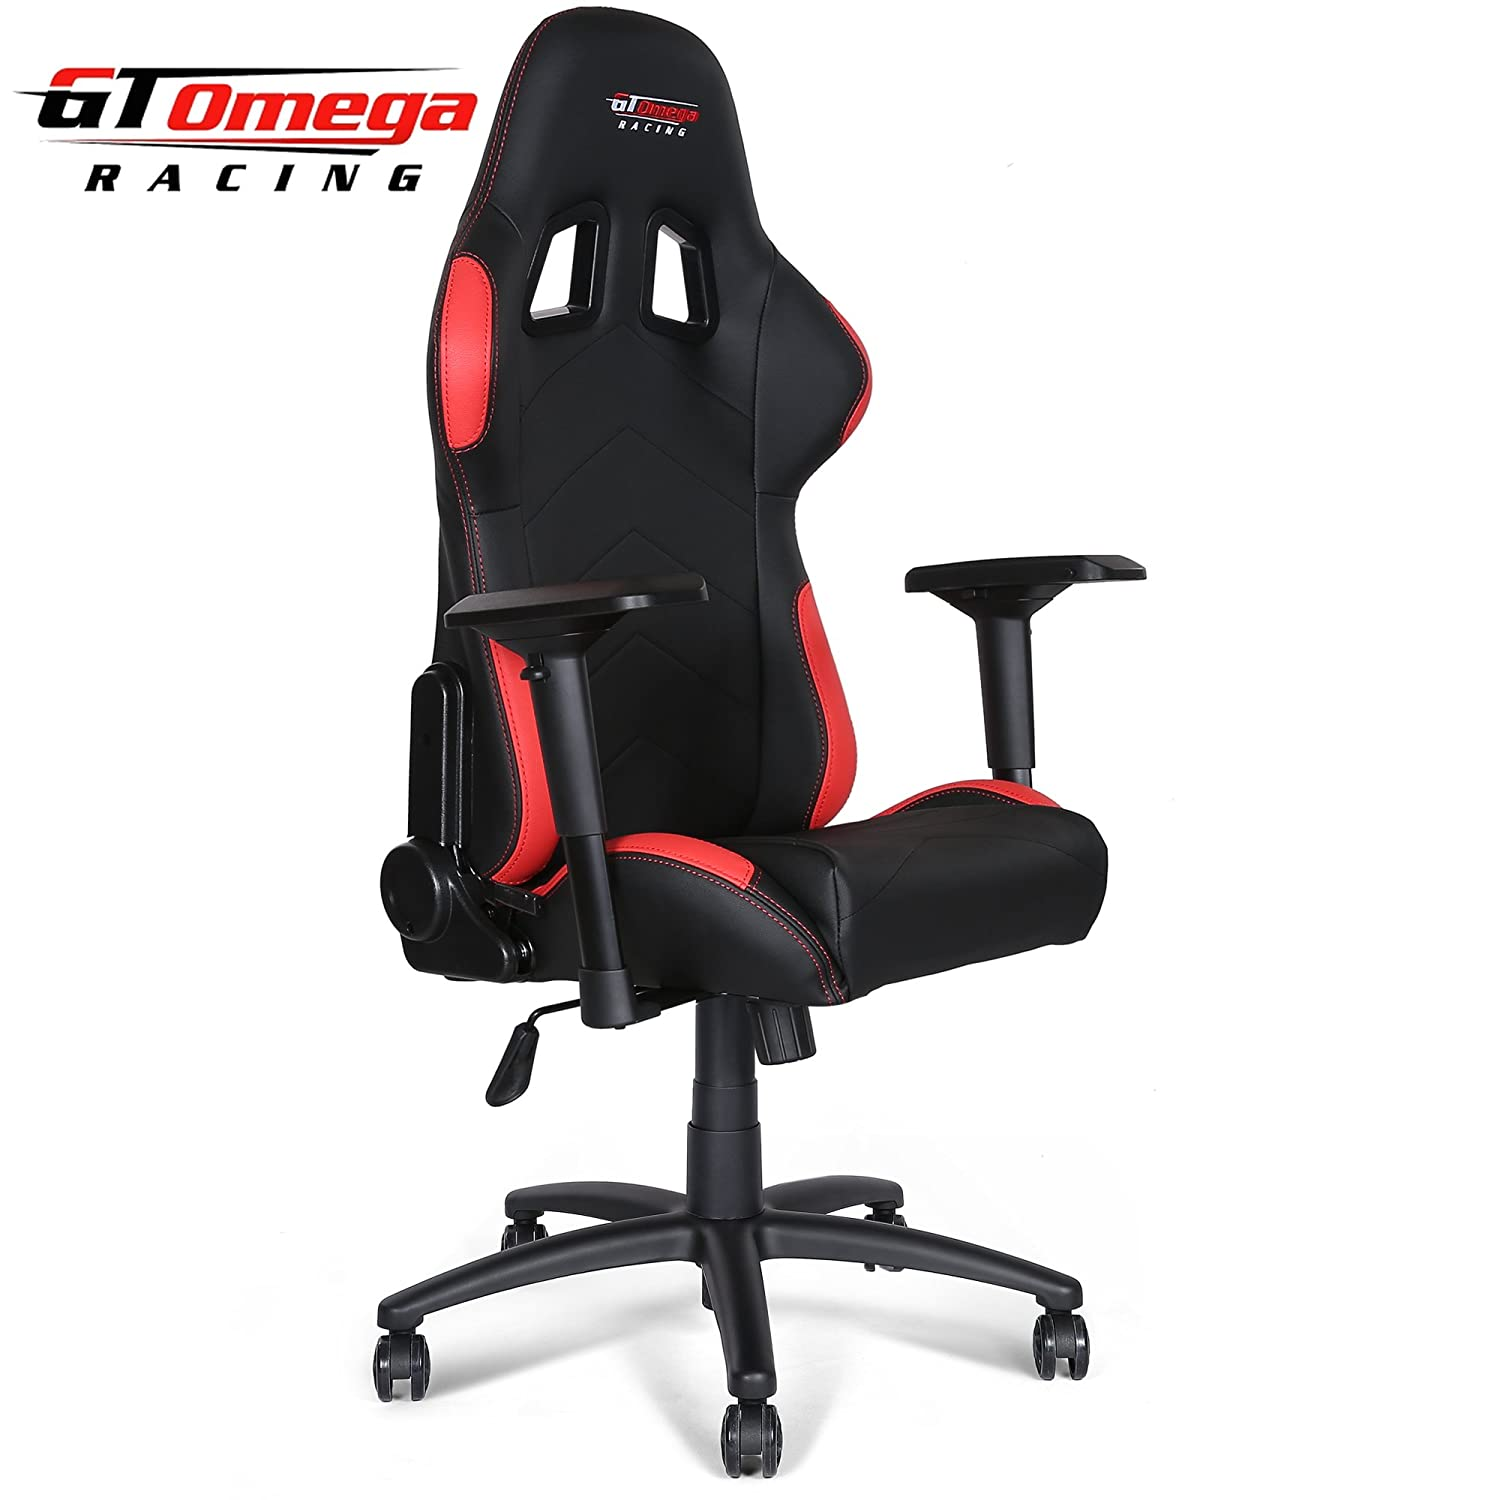 Amazon GT Omega PRO Racing fice Chair Black and Red Leather